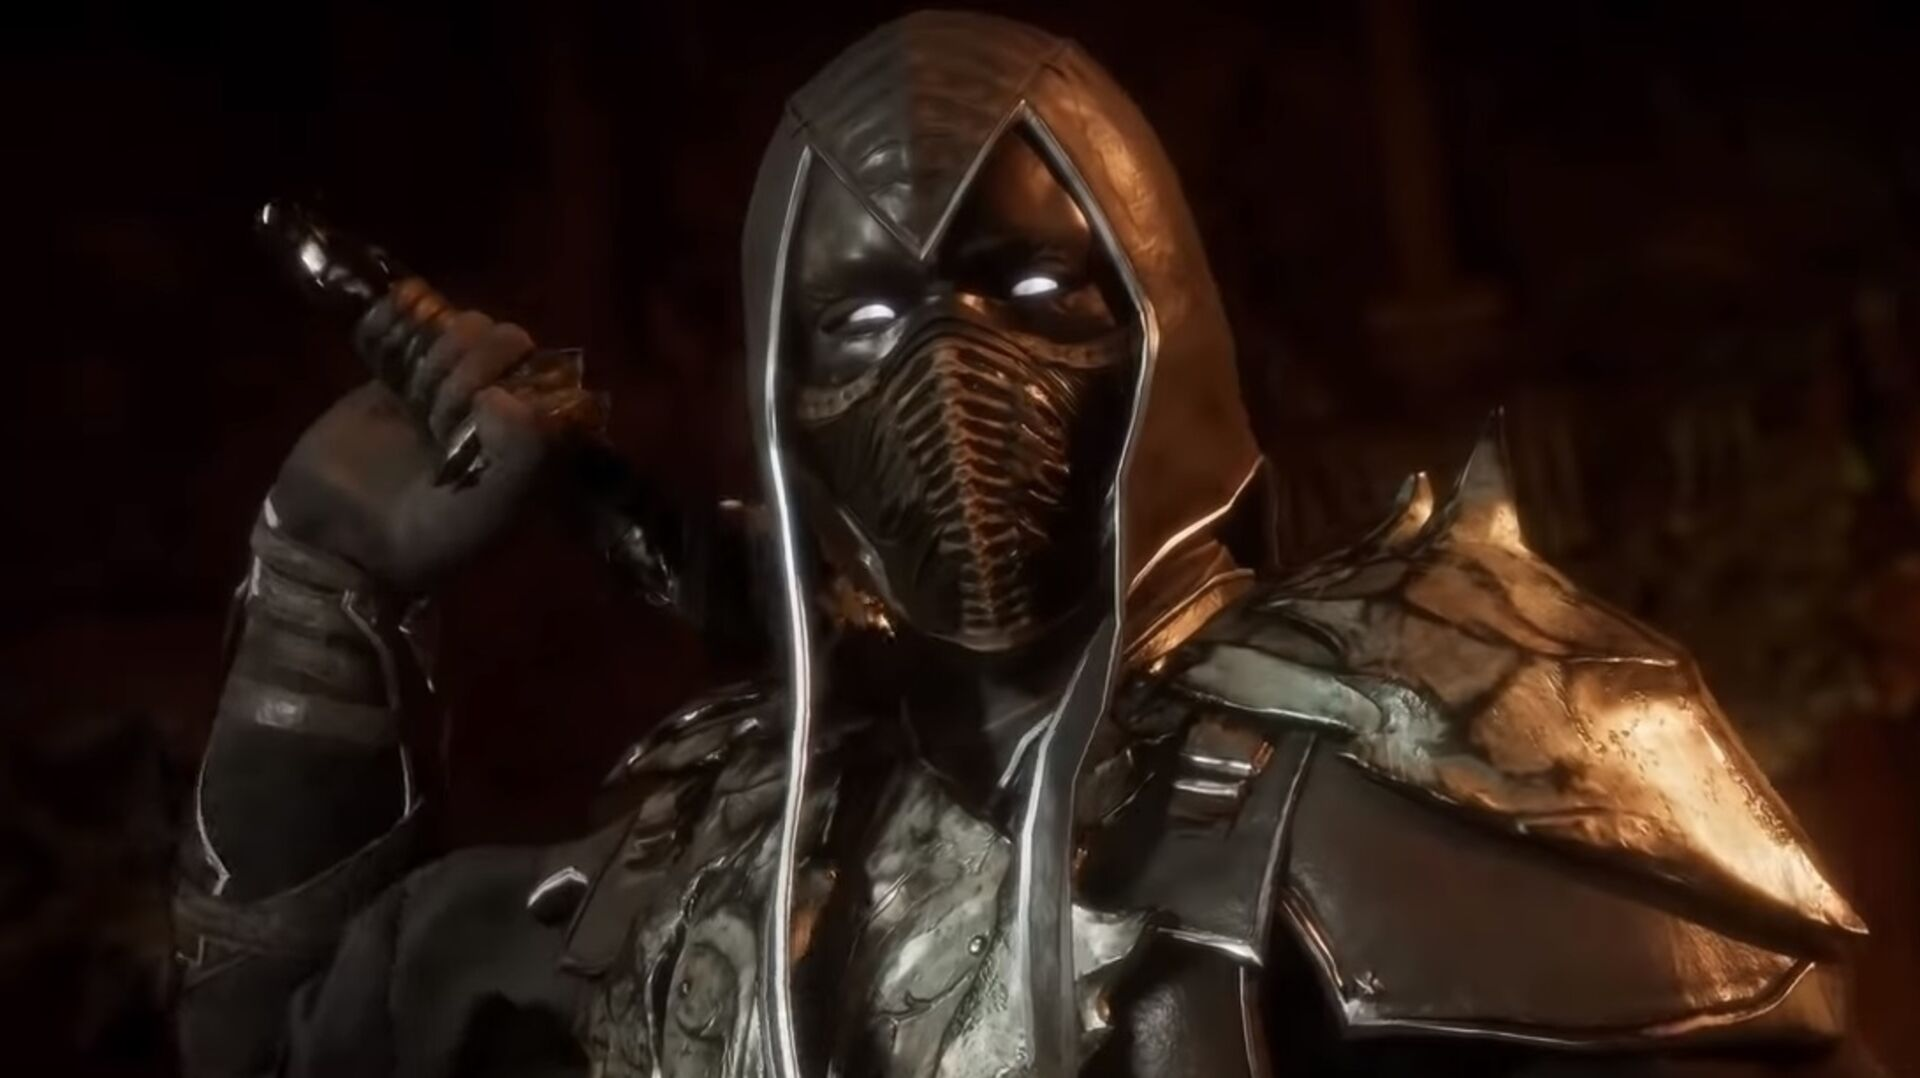 Mortal Kombat 11 players are beating the grind using exploits, AI